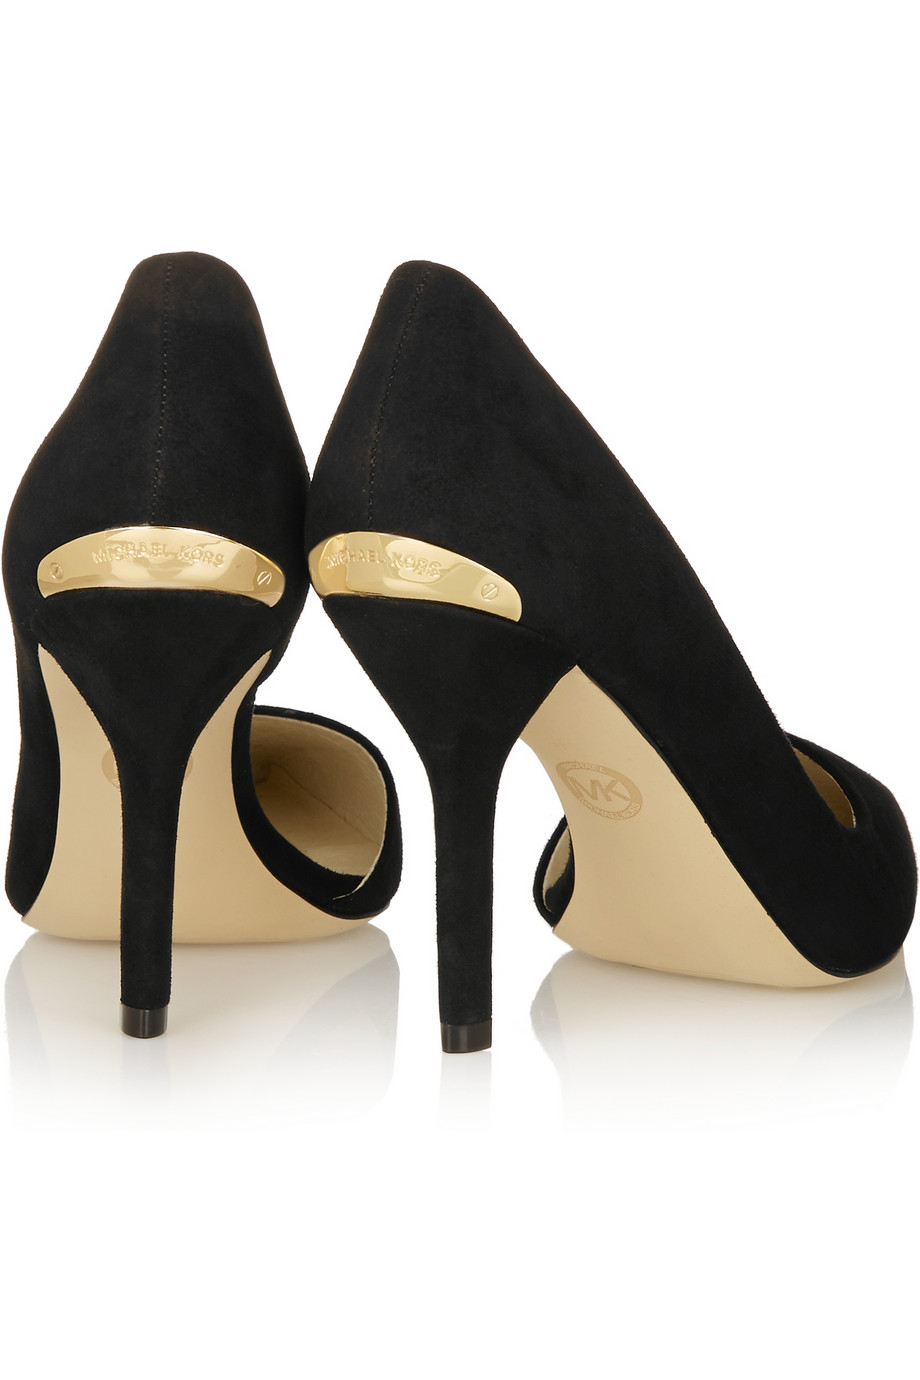 acff9e351350 MICHAEL Michael Kors Julieta Suede Pumps in Black - Lyst